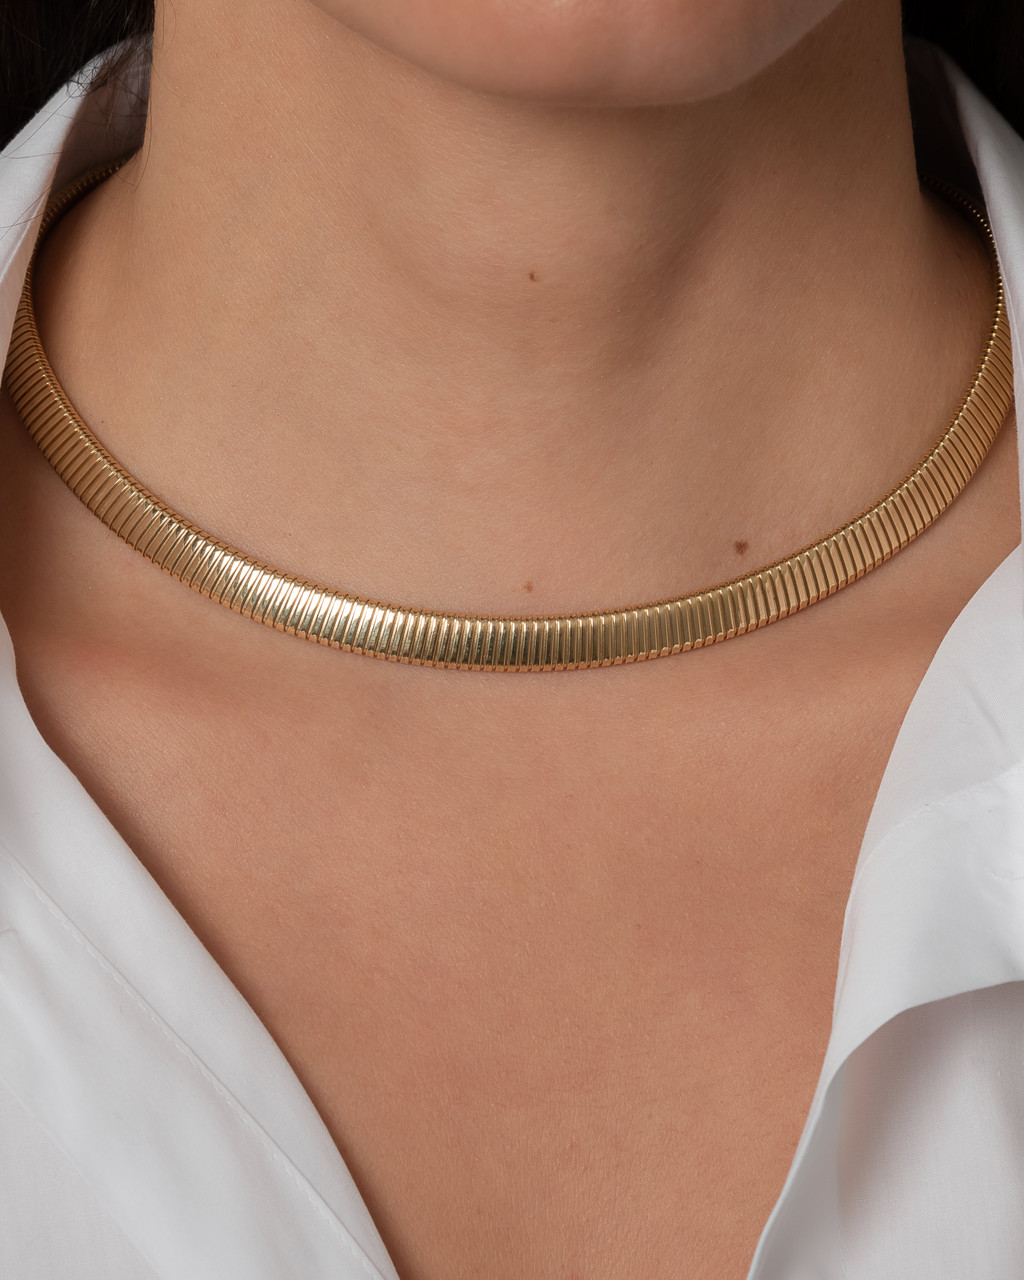 14k. gold coil chain necklace